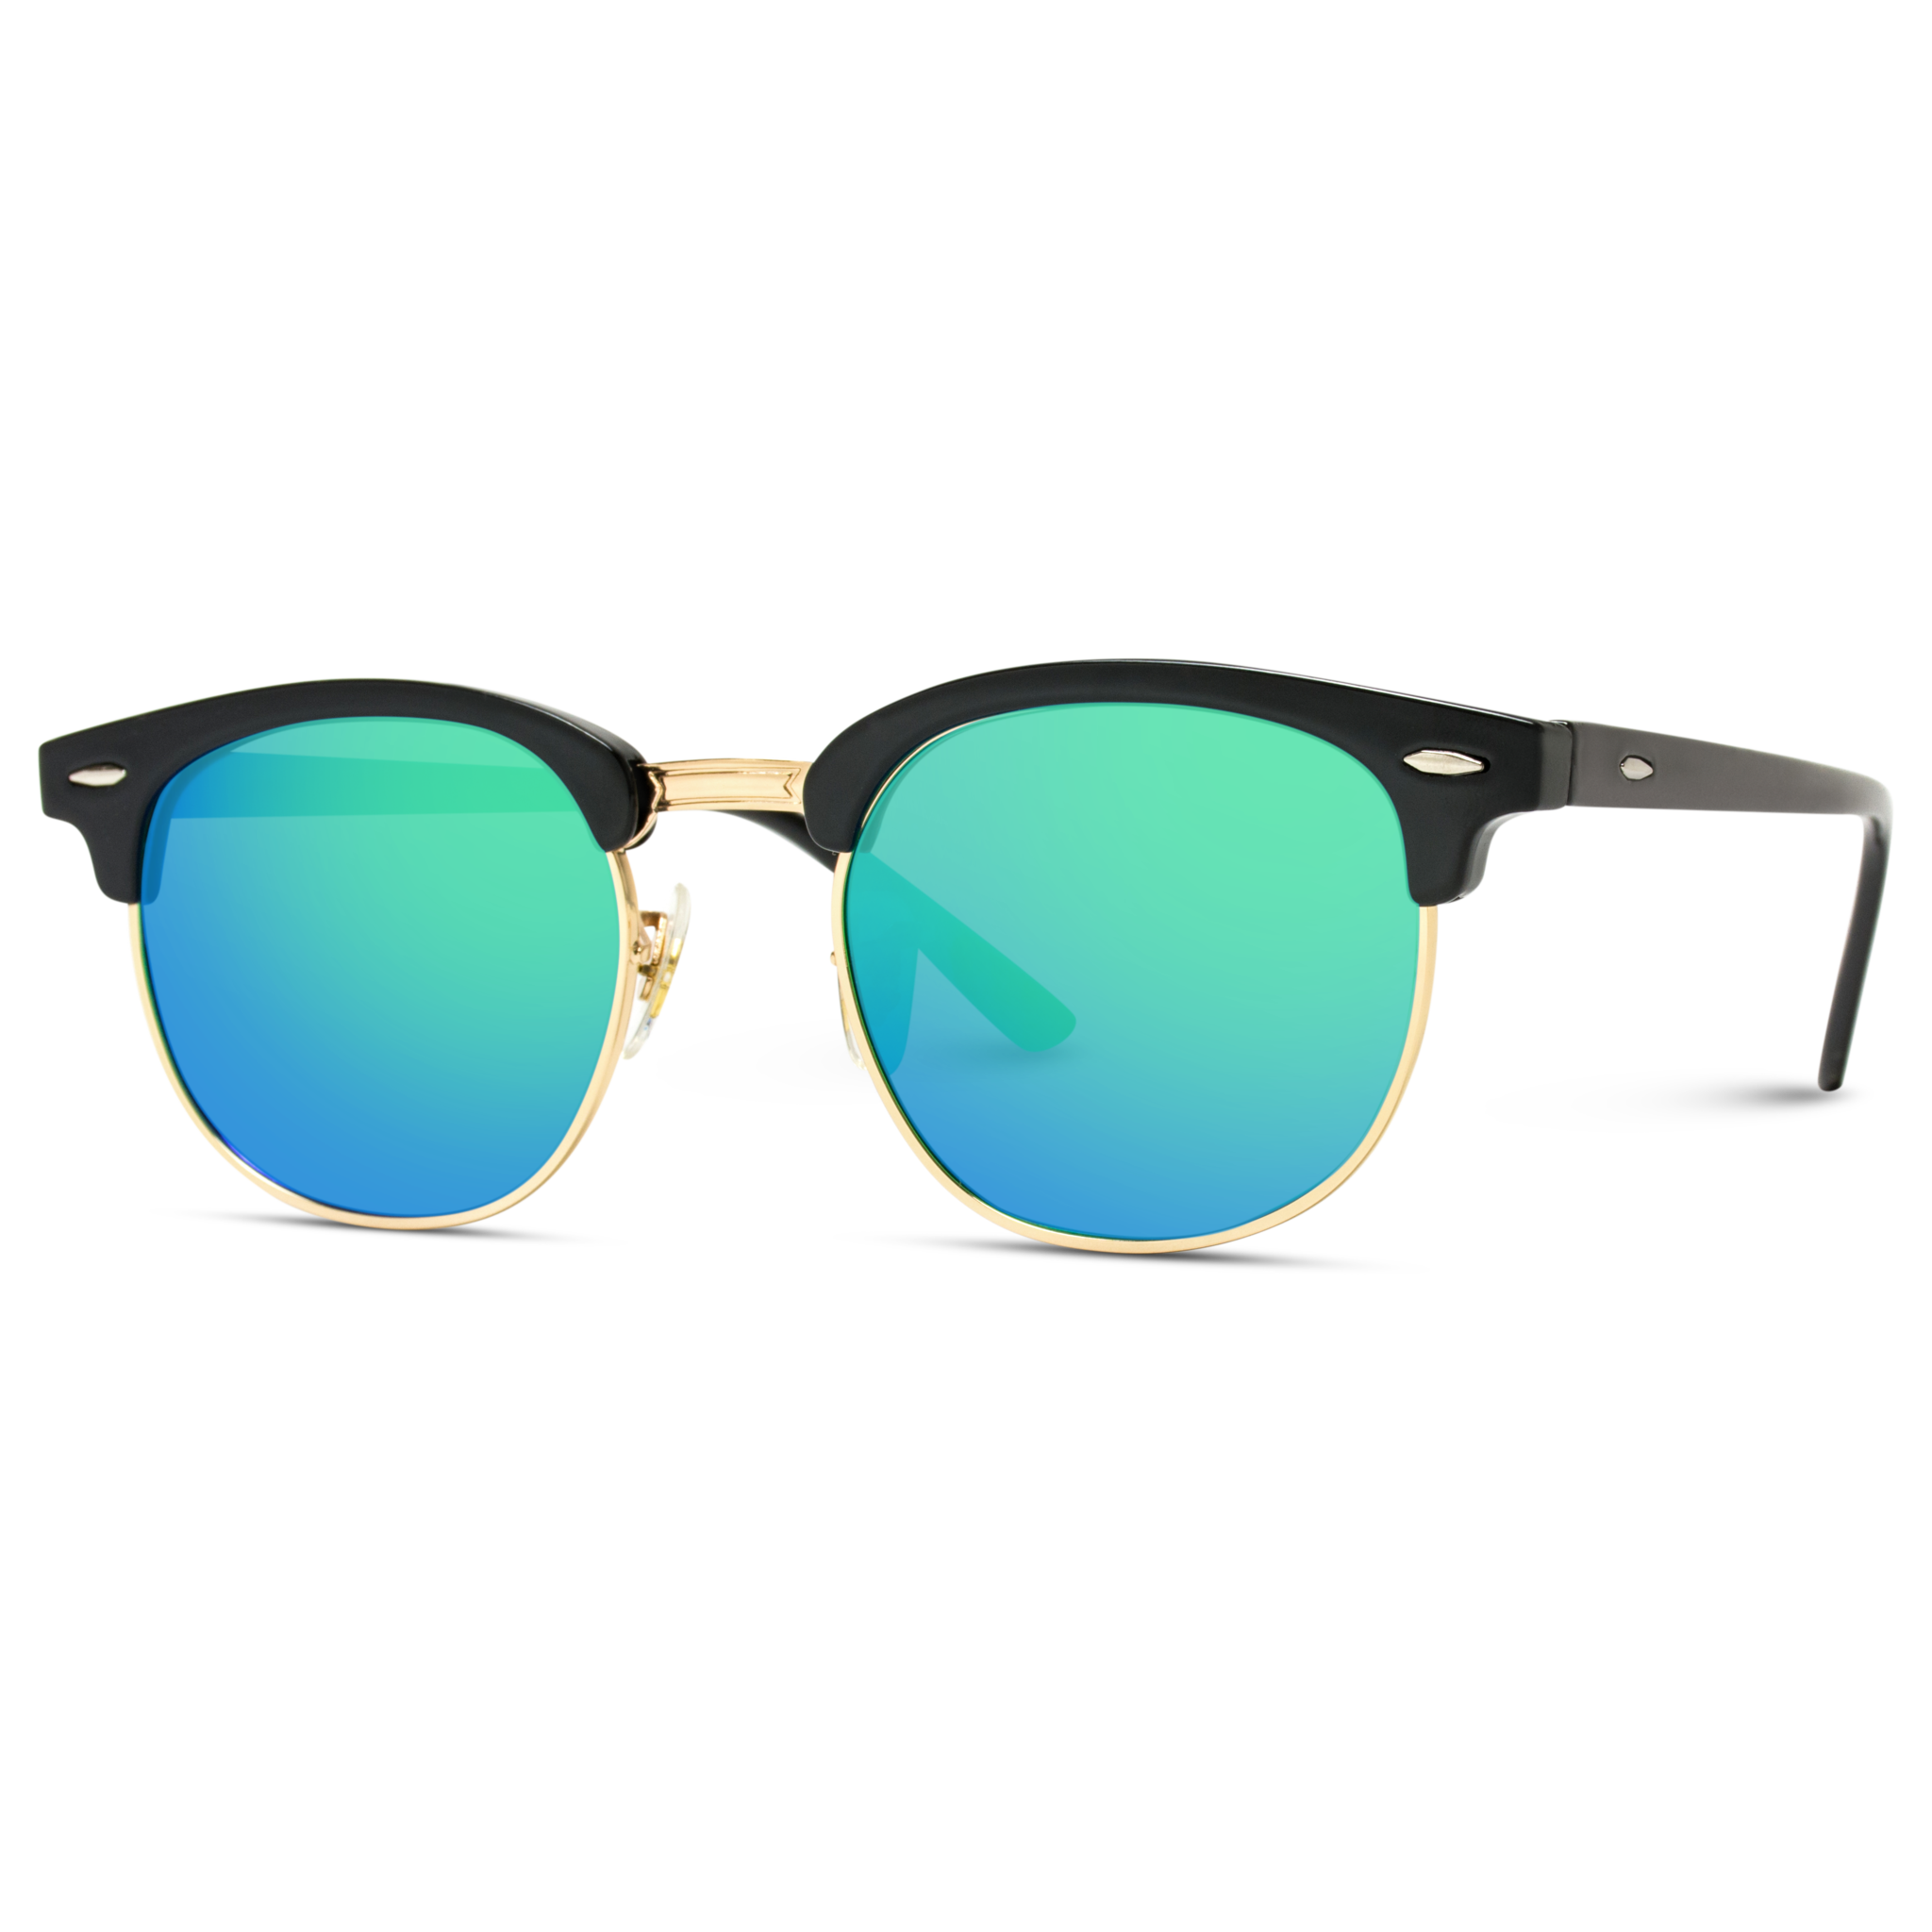 Theo Half Frame Polarized Lens Horn Rimmed Sunglasses Blue Background Images Black Background Images Photoshop Digital Background